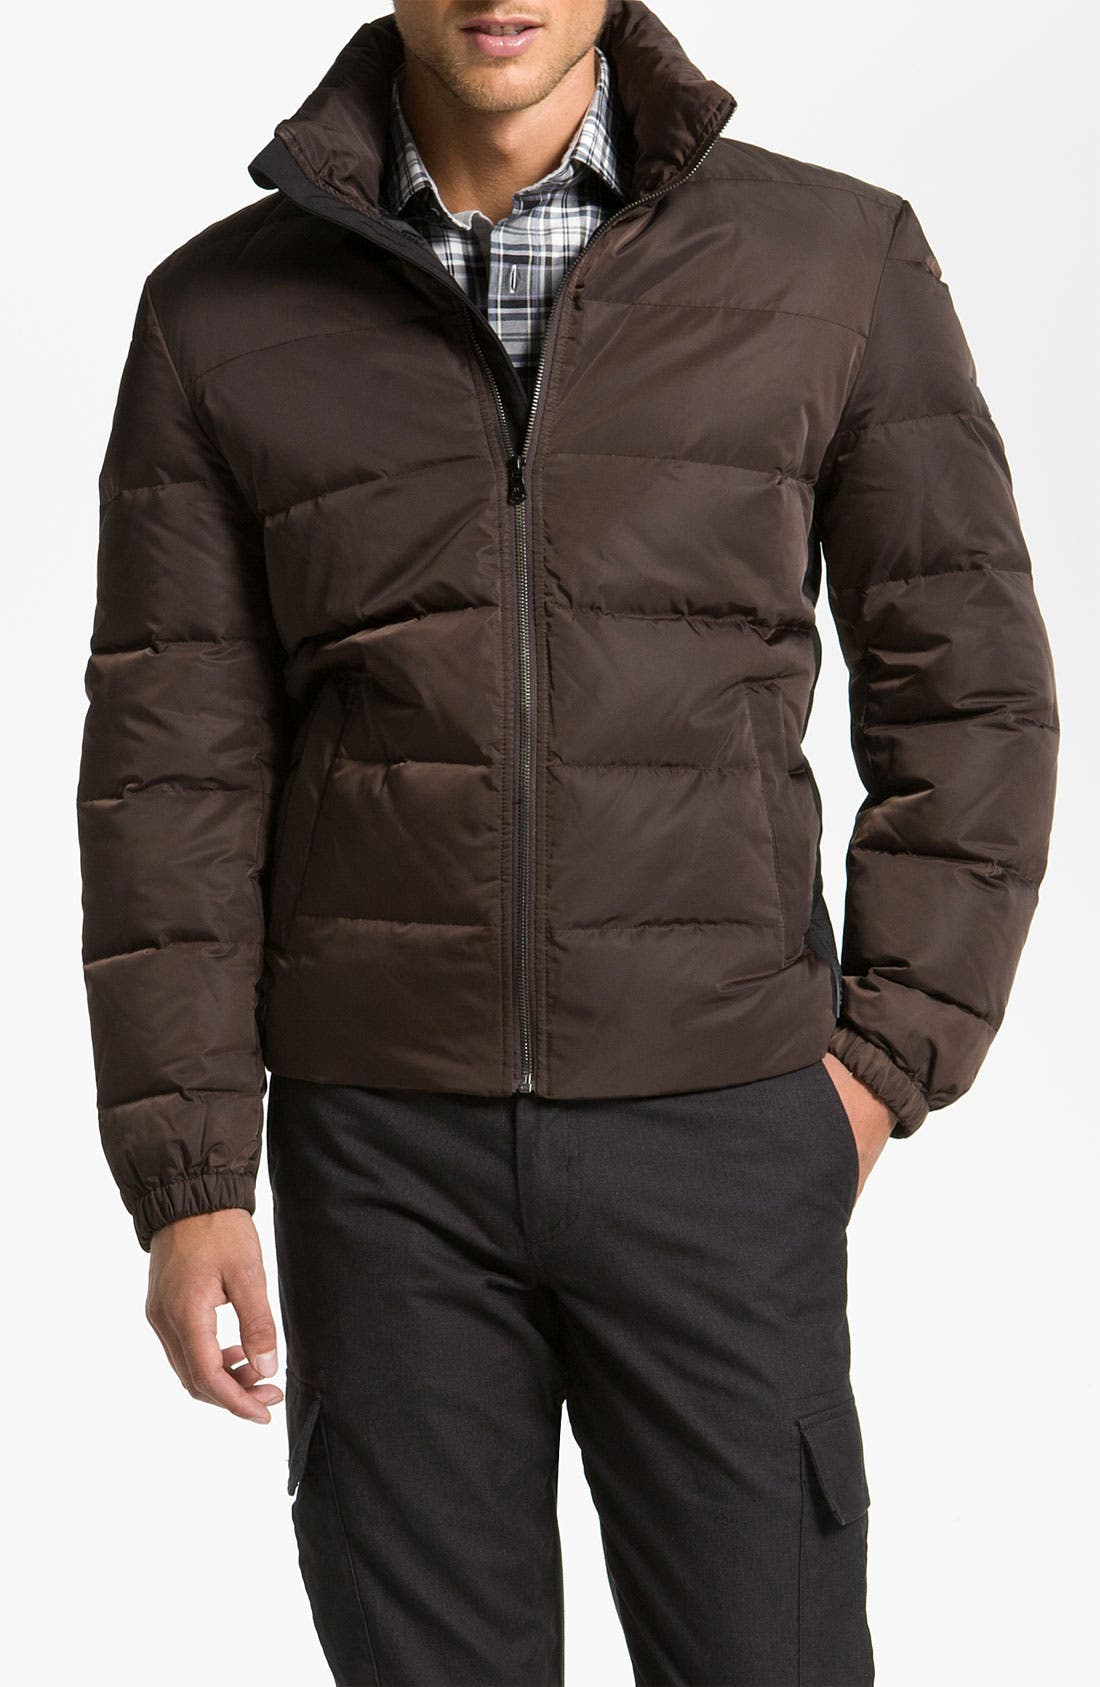 Alternate Image 1 Selected - Michael Kors 'Stowe' Quilted Down Jacket